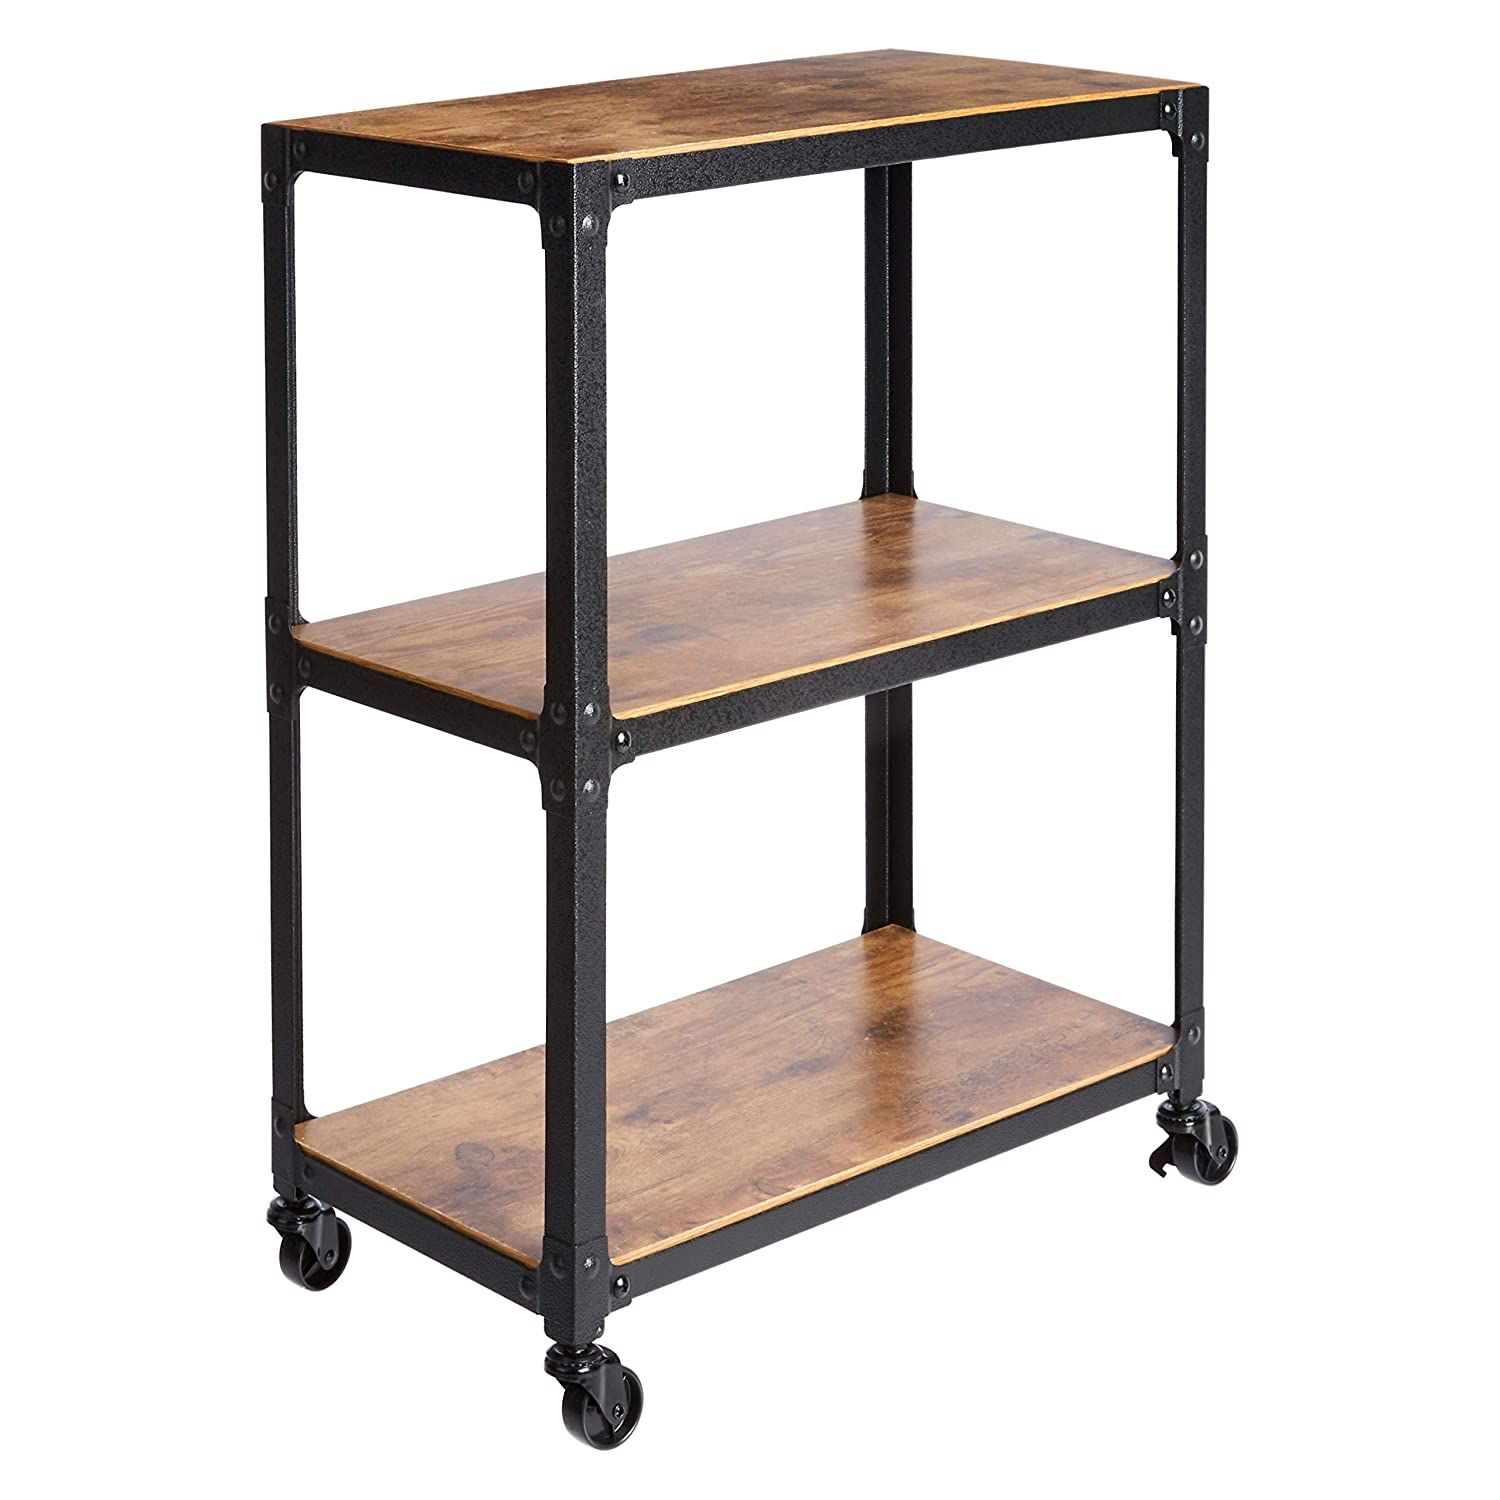 DHgateBasics 3-Tier Wood and Metal Utility Cart, Black/Brown